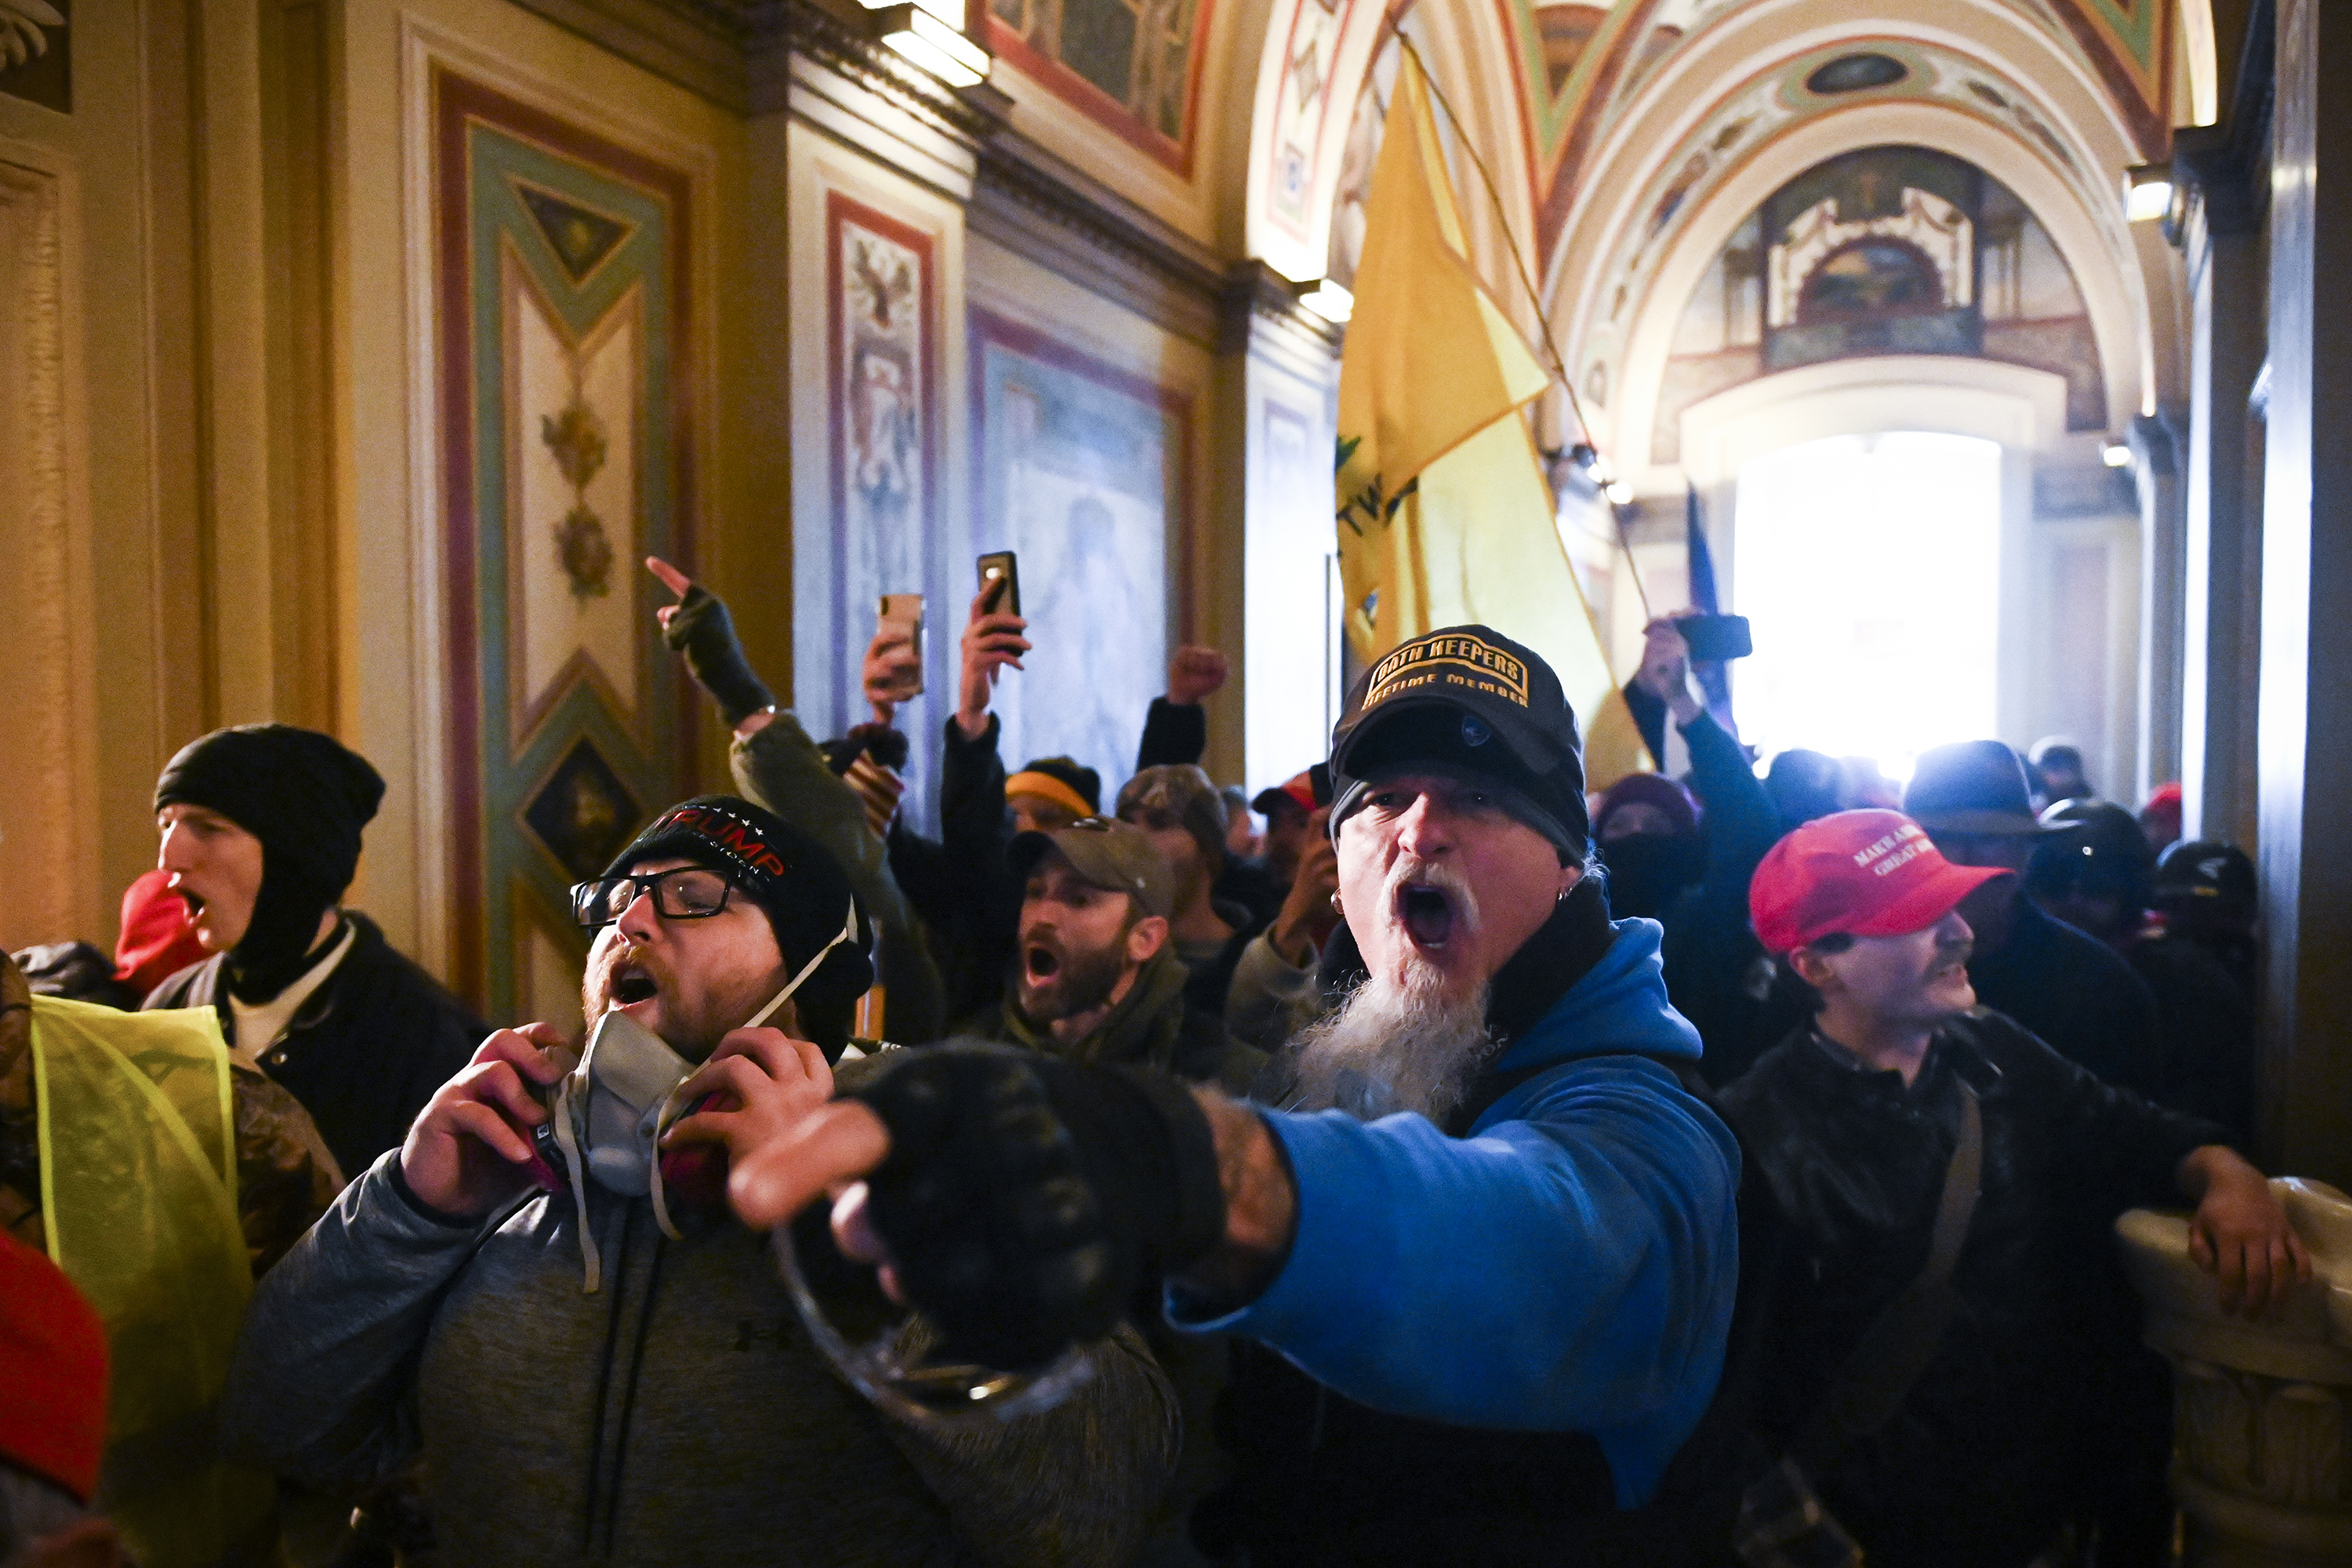 Rioters inside the Capitol building.